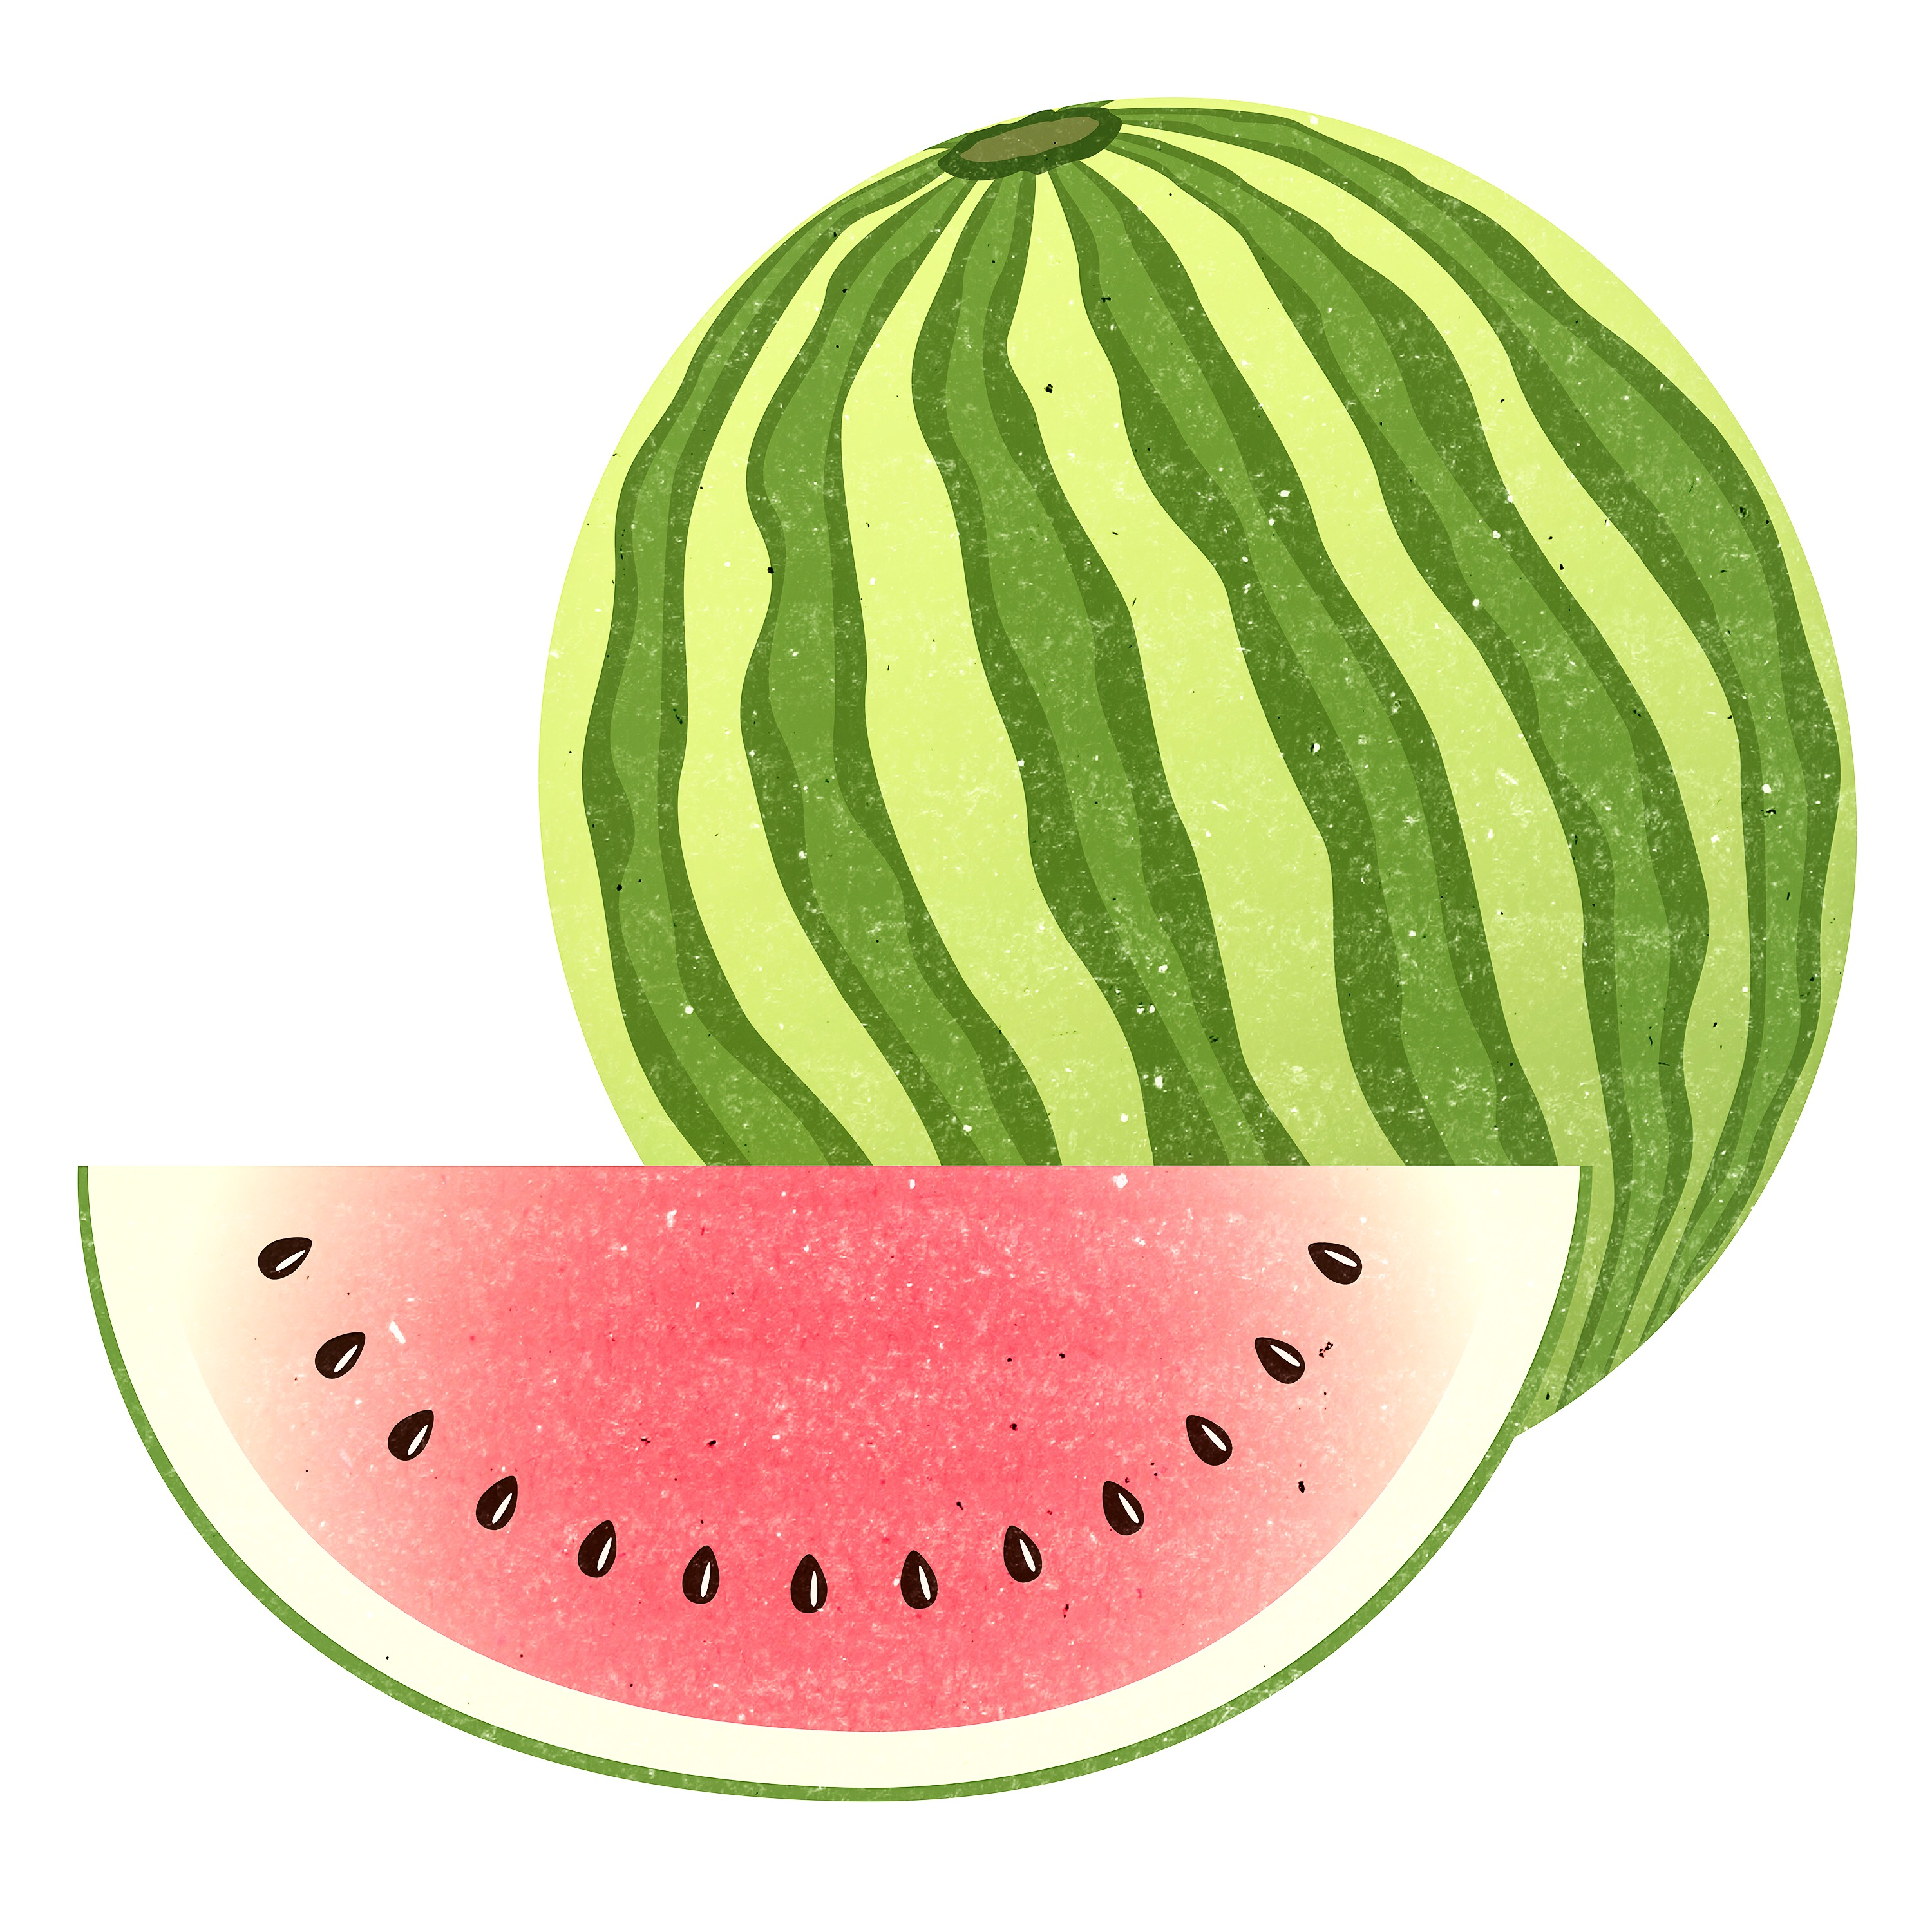 MELONEN ILLUSTRATION